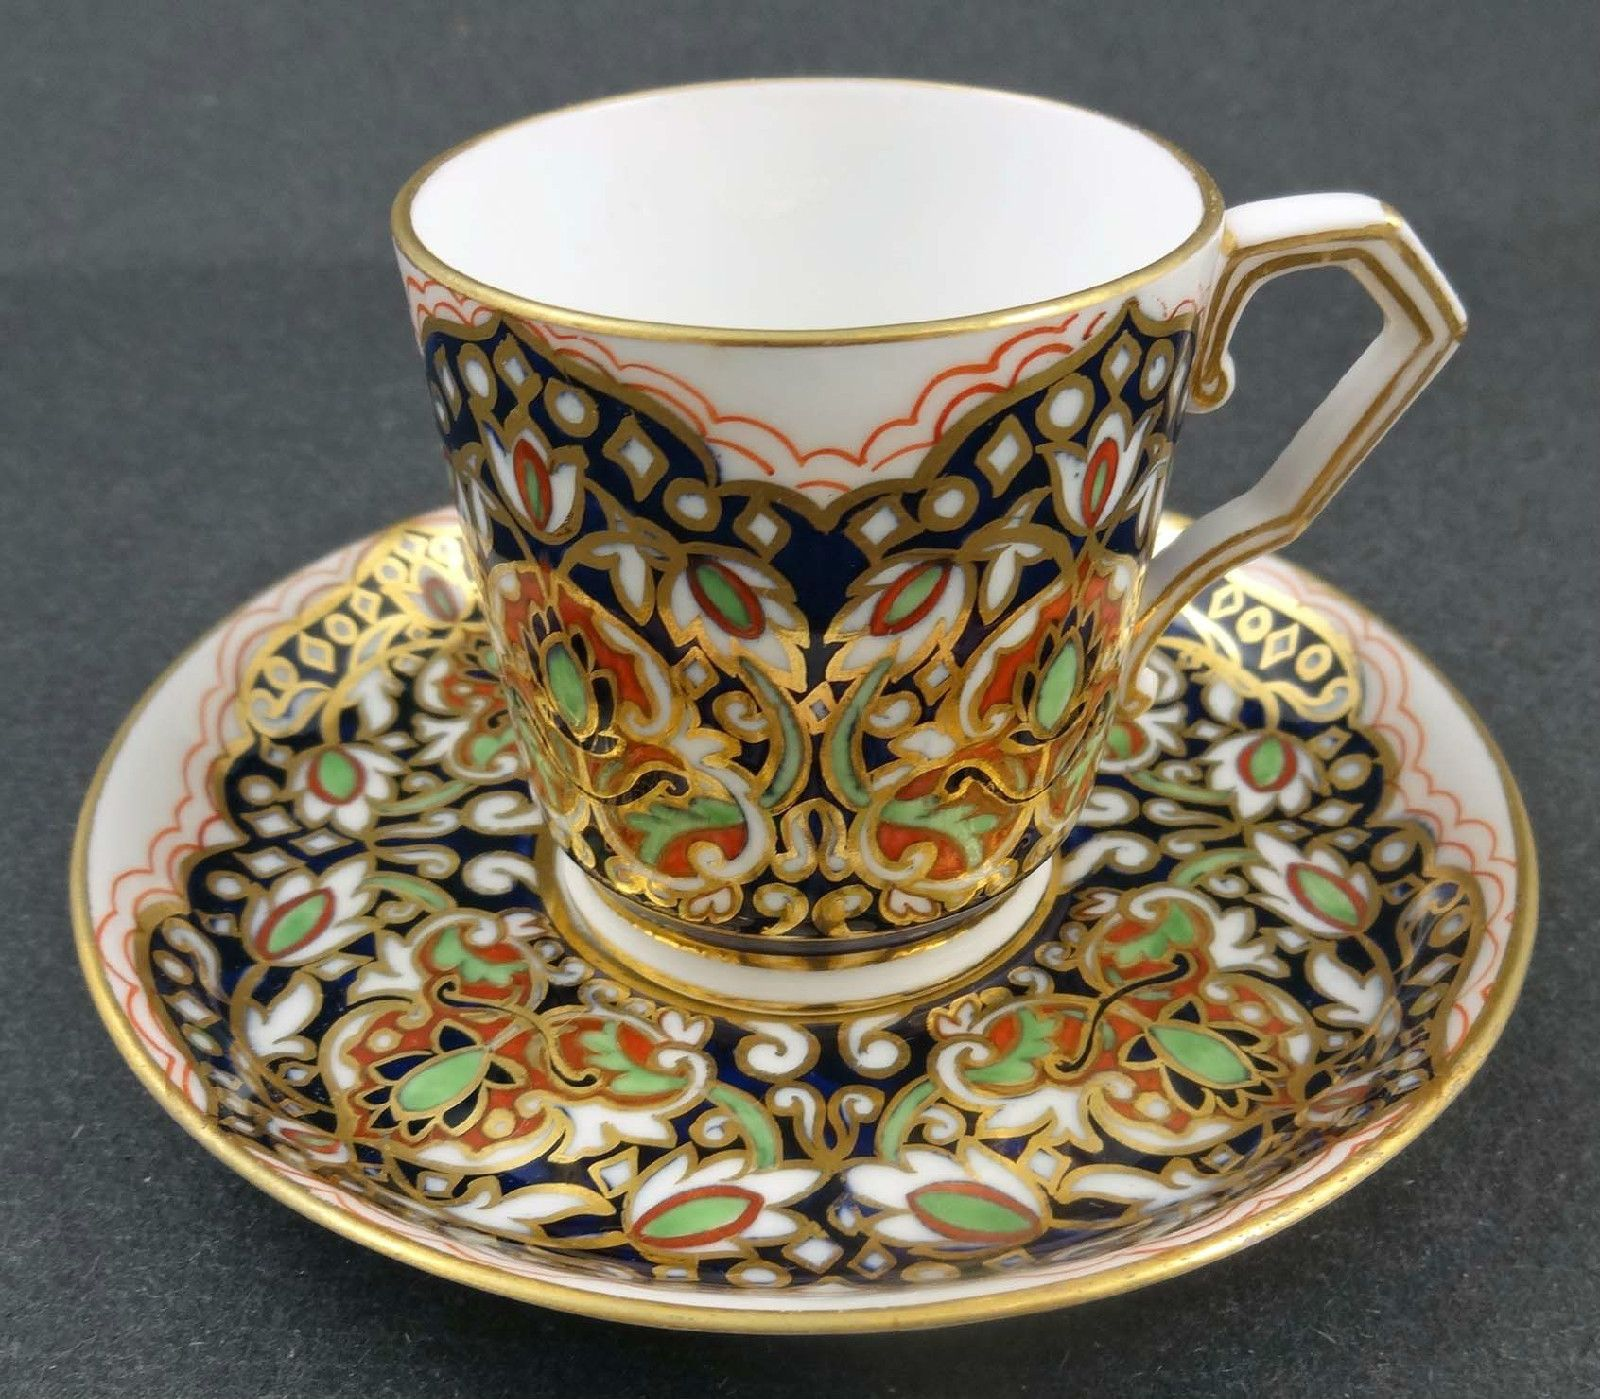 Fine antique royal crown derby persian style demitasse cup saucer fine antique royal crown derby persian style demitasse cup saucer reviewsmspy